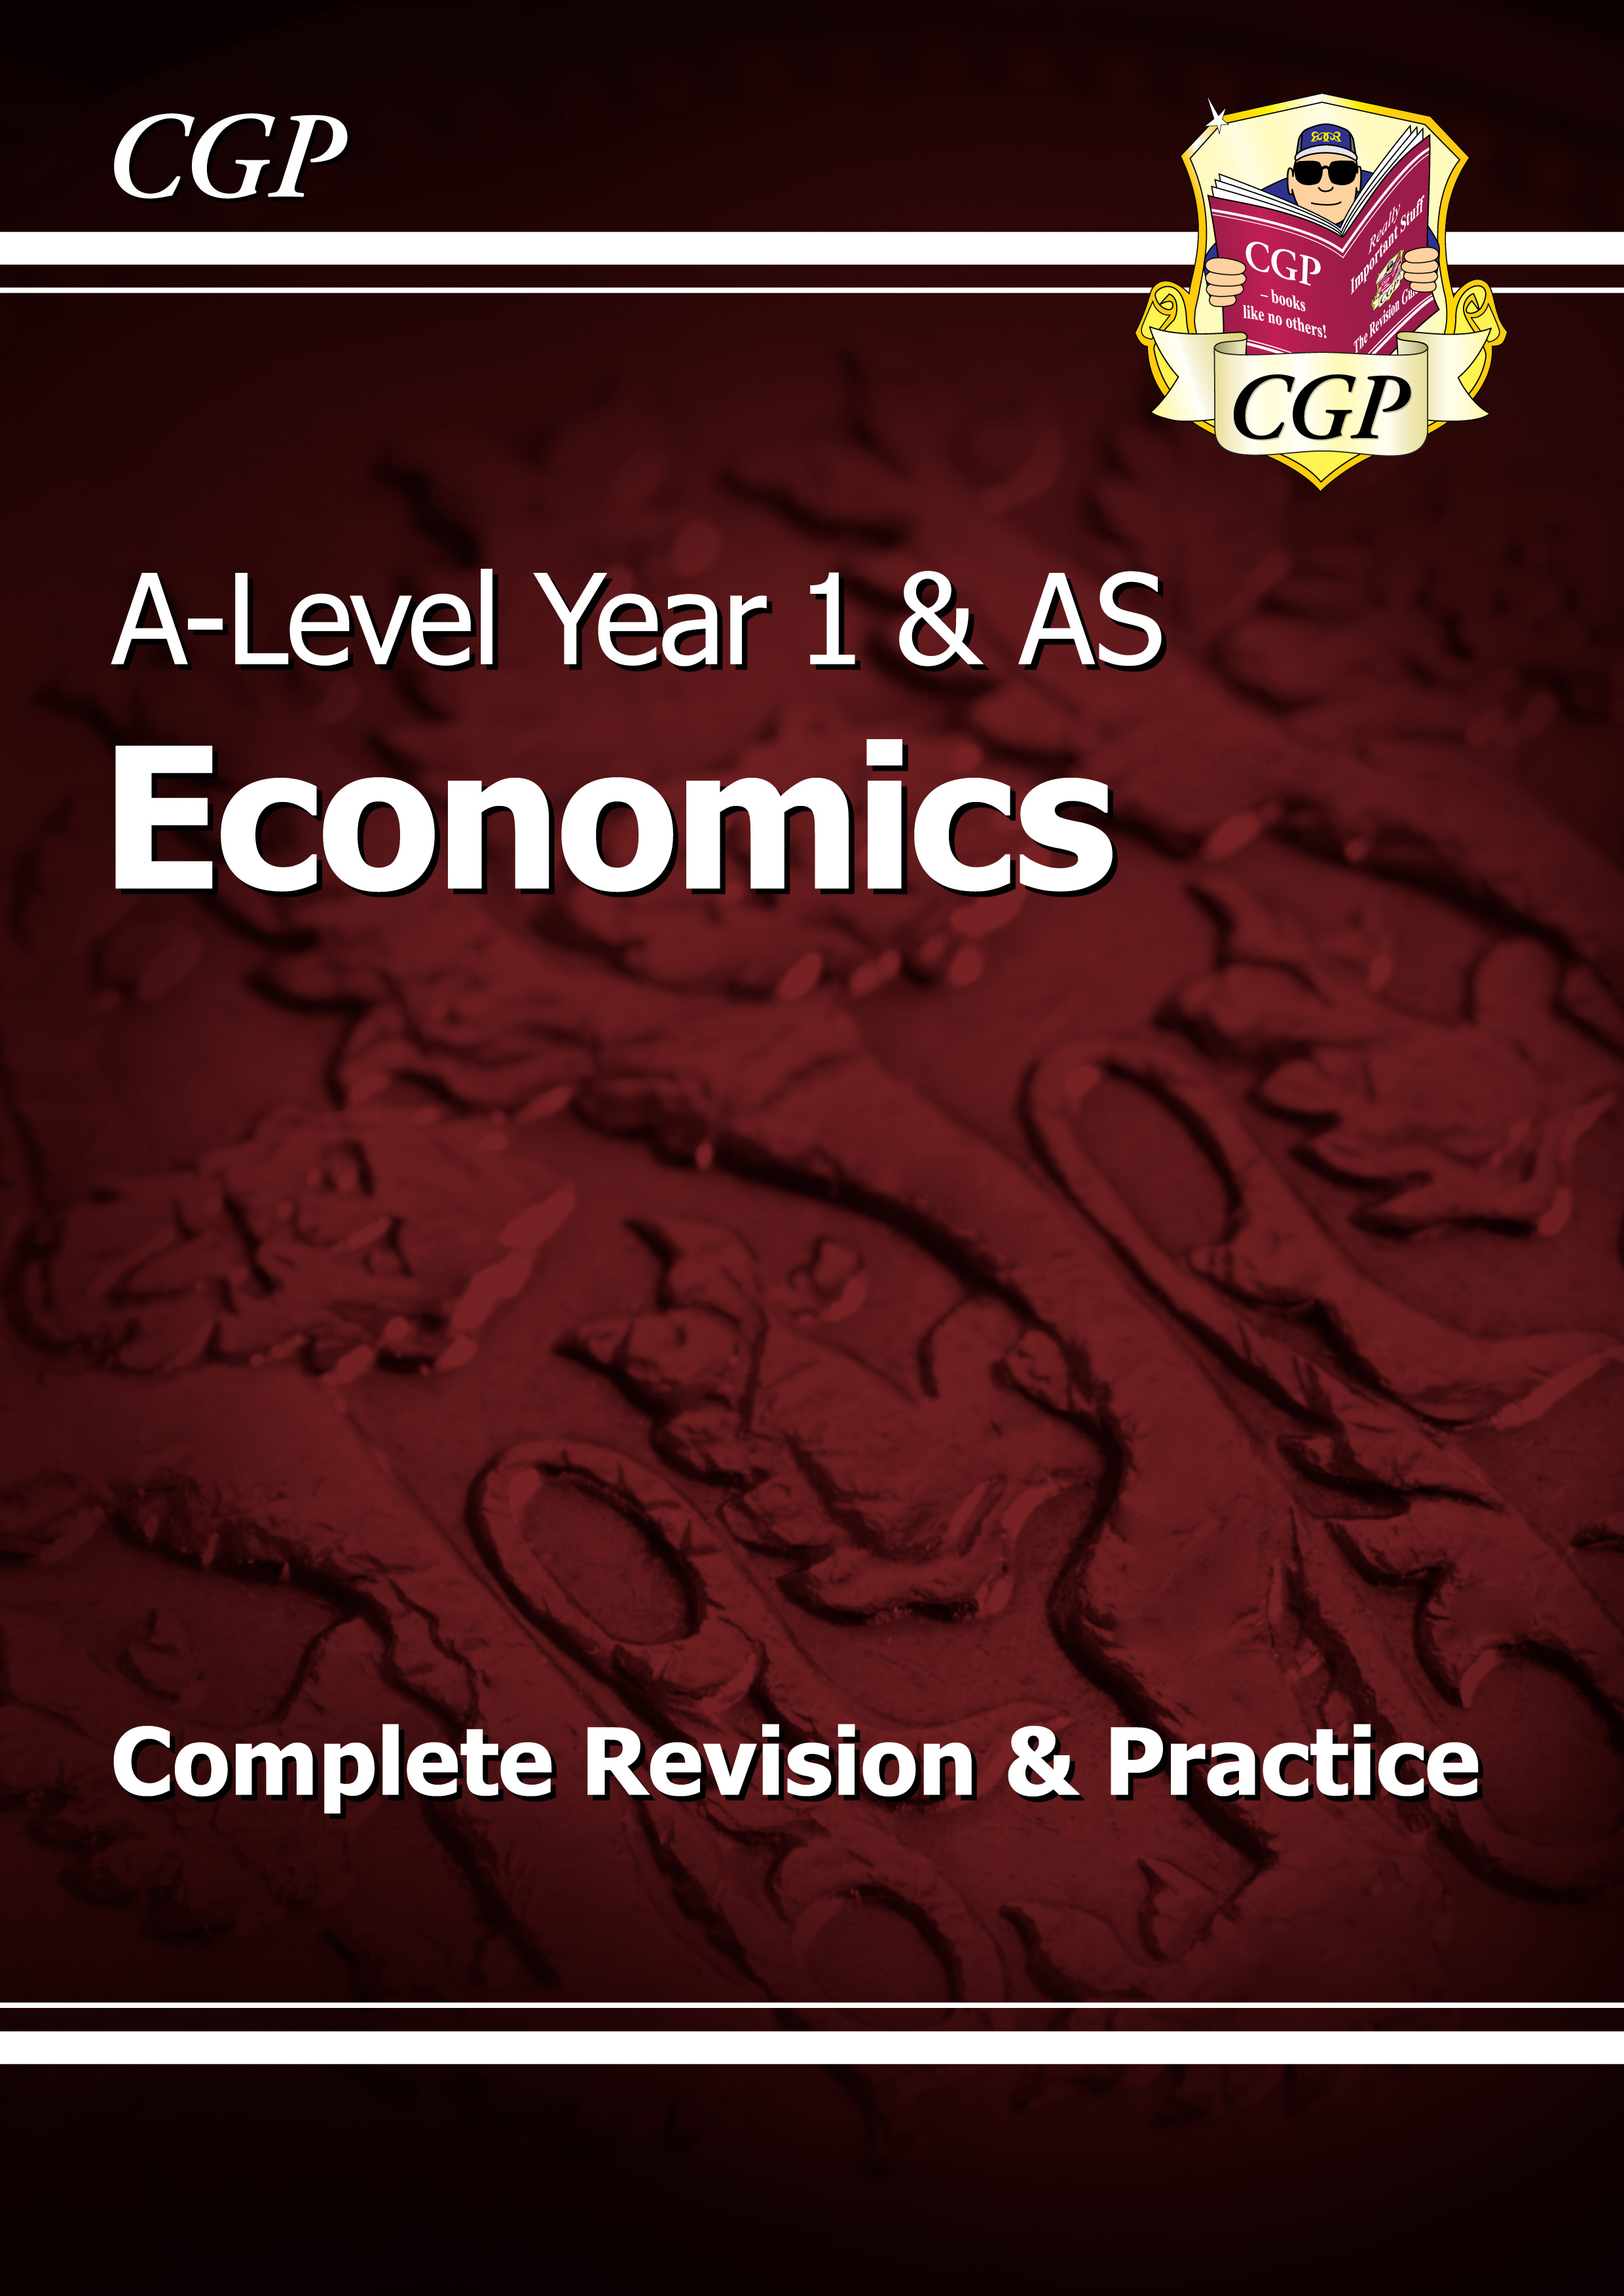 EKHR52DK - A-Level Economics: Year 1 & AS Complete Revision & Practice